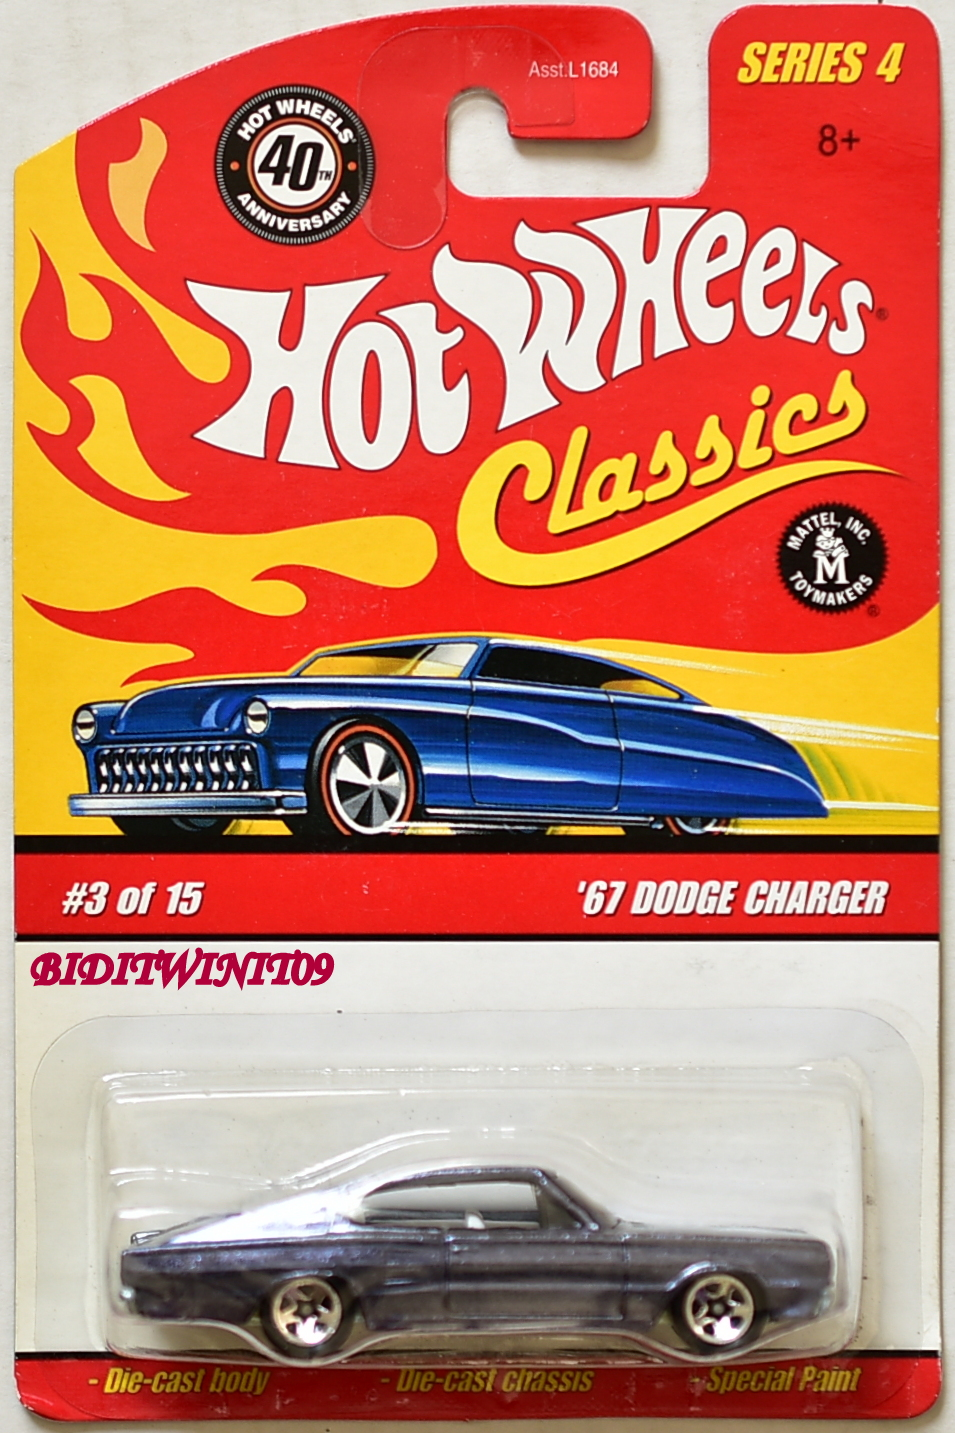 HOT WHEELS CLASSICS SERIES 4 '67 DODGE CHARGER #3/15